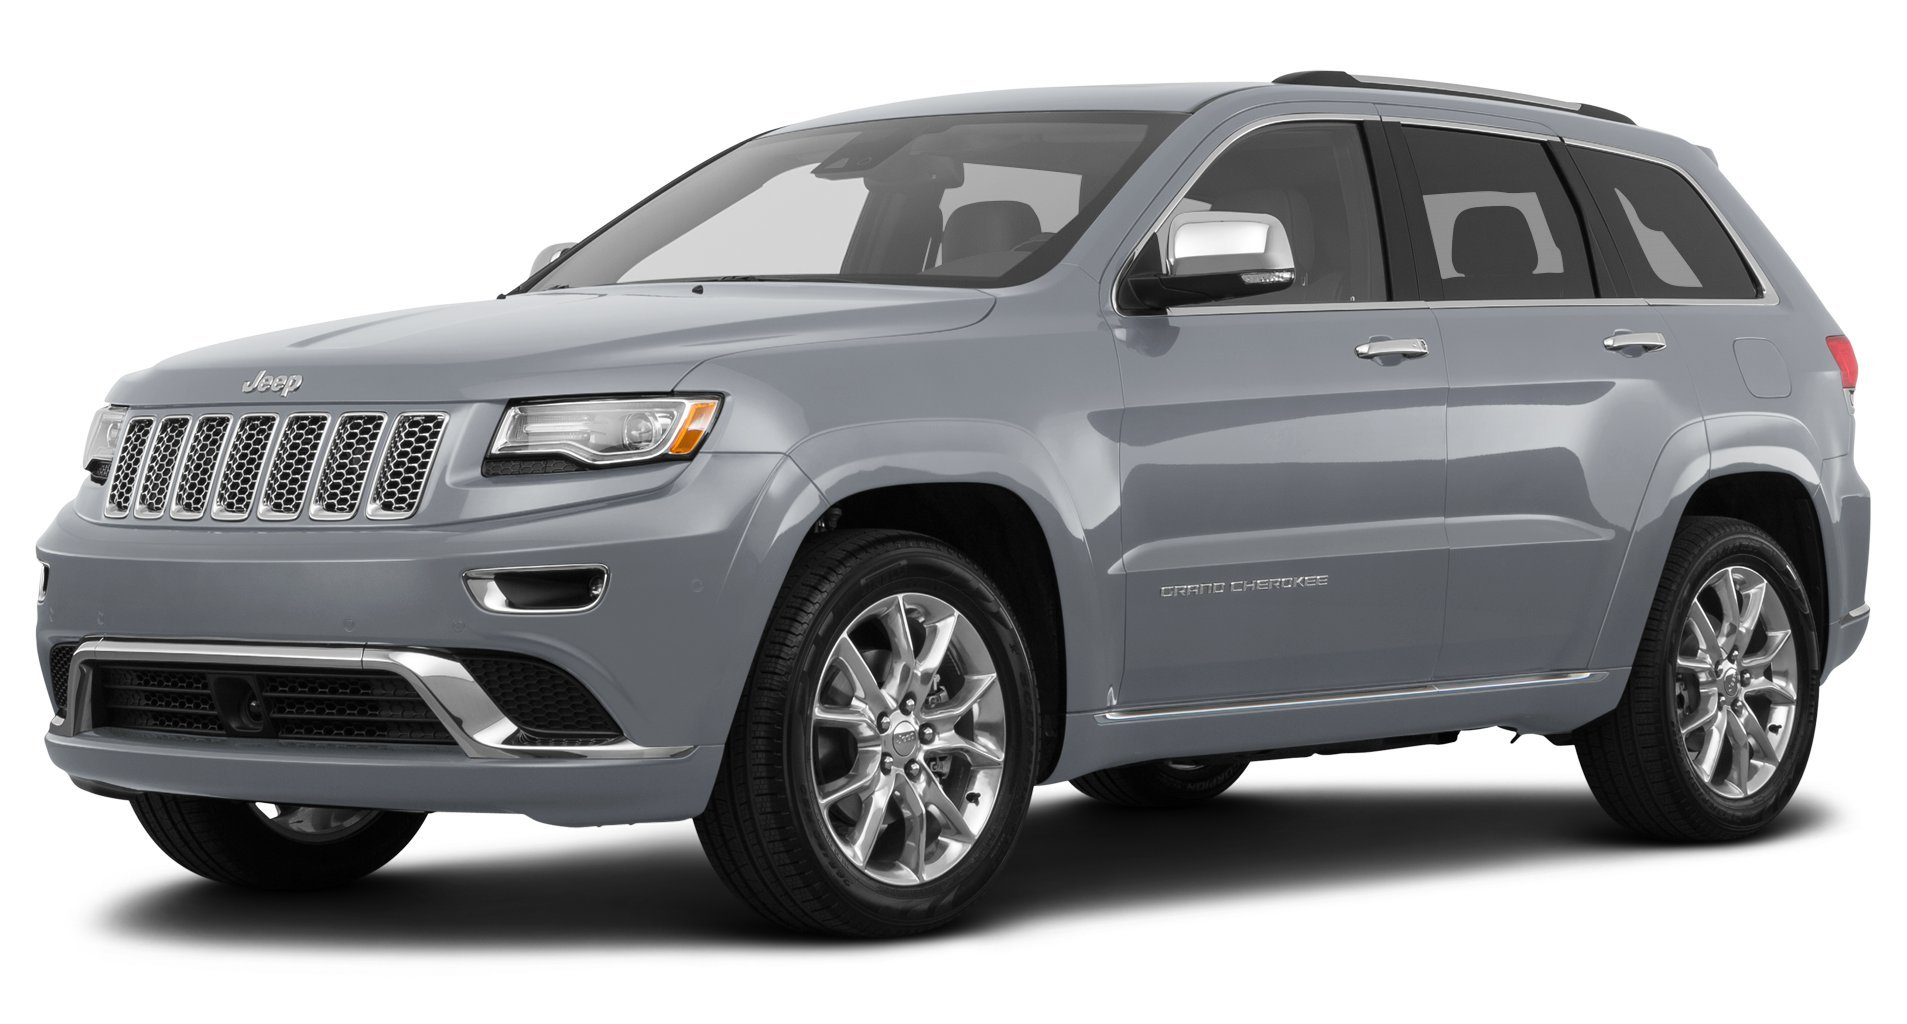 2016 jeep grand cherokee reviews images and. Black Bedroom Furniture Sets. Home Design Ideas